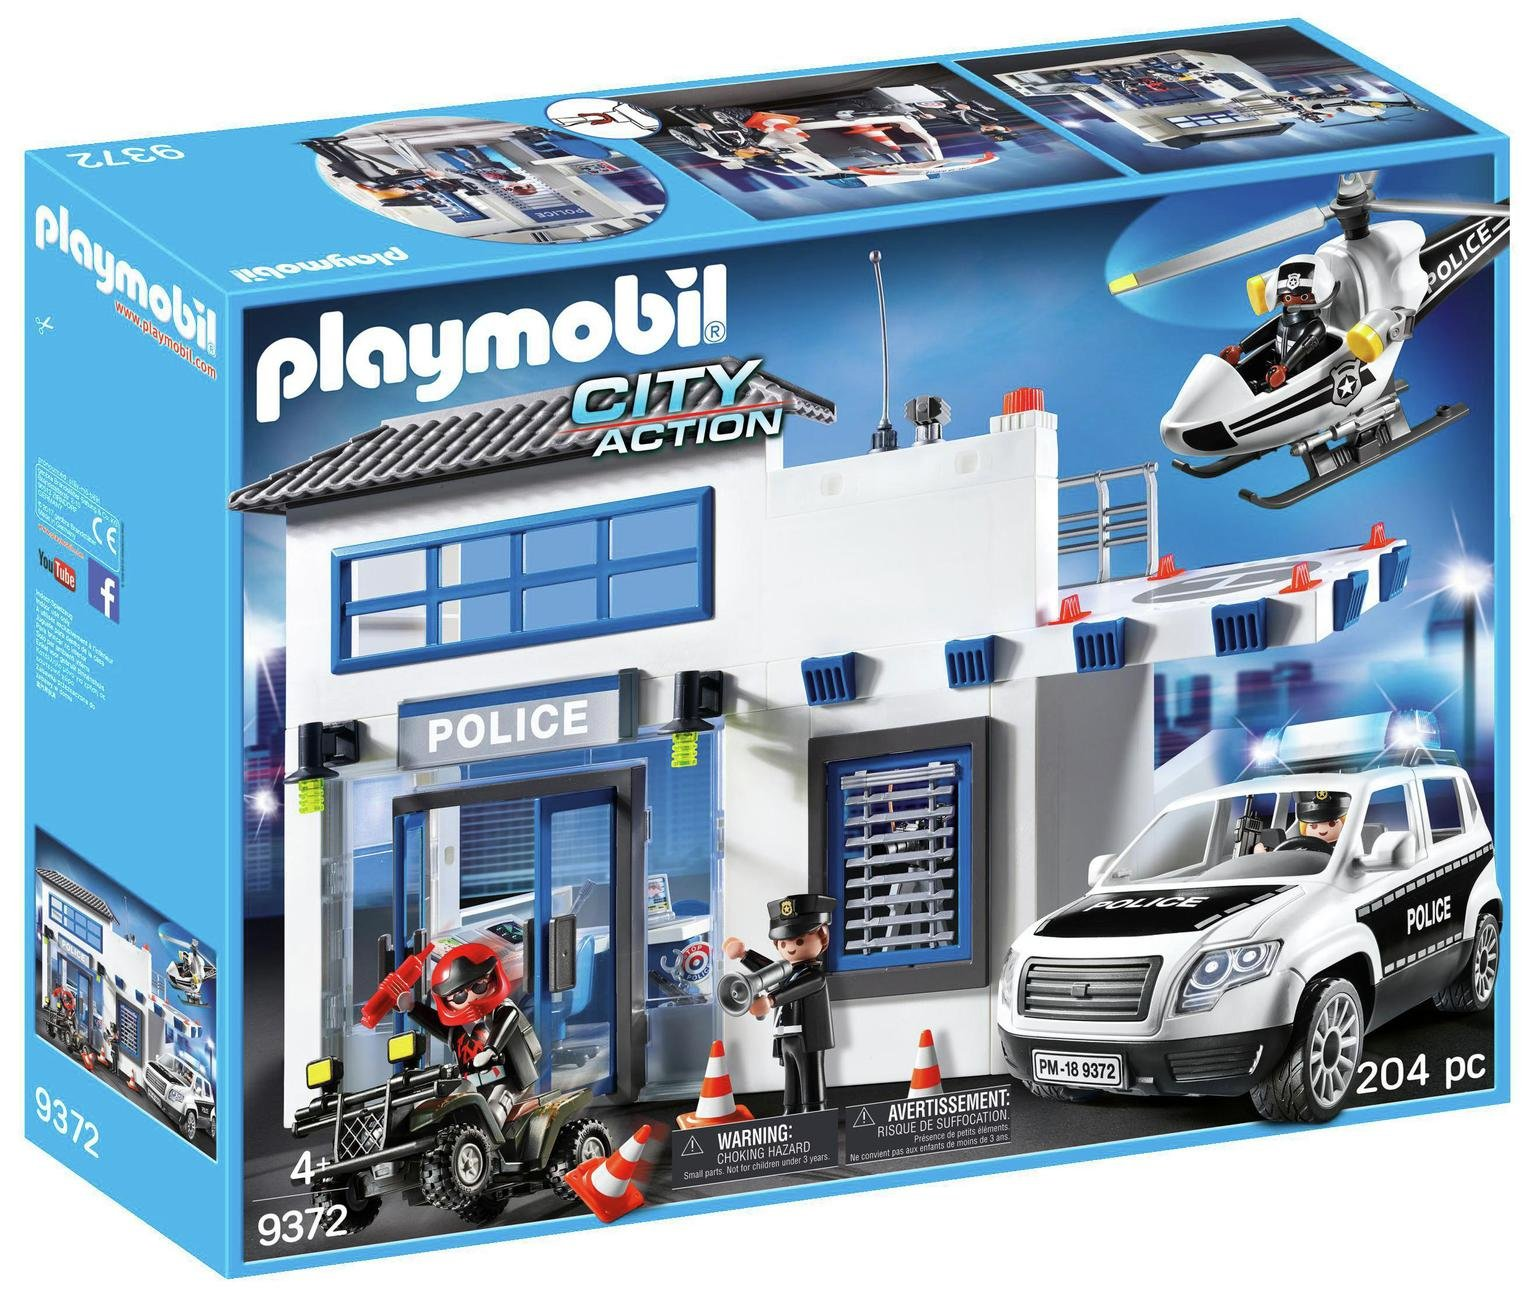 Playmobil 9372 City Action Police Station Bundle